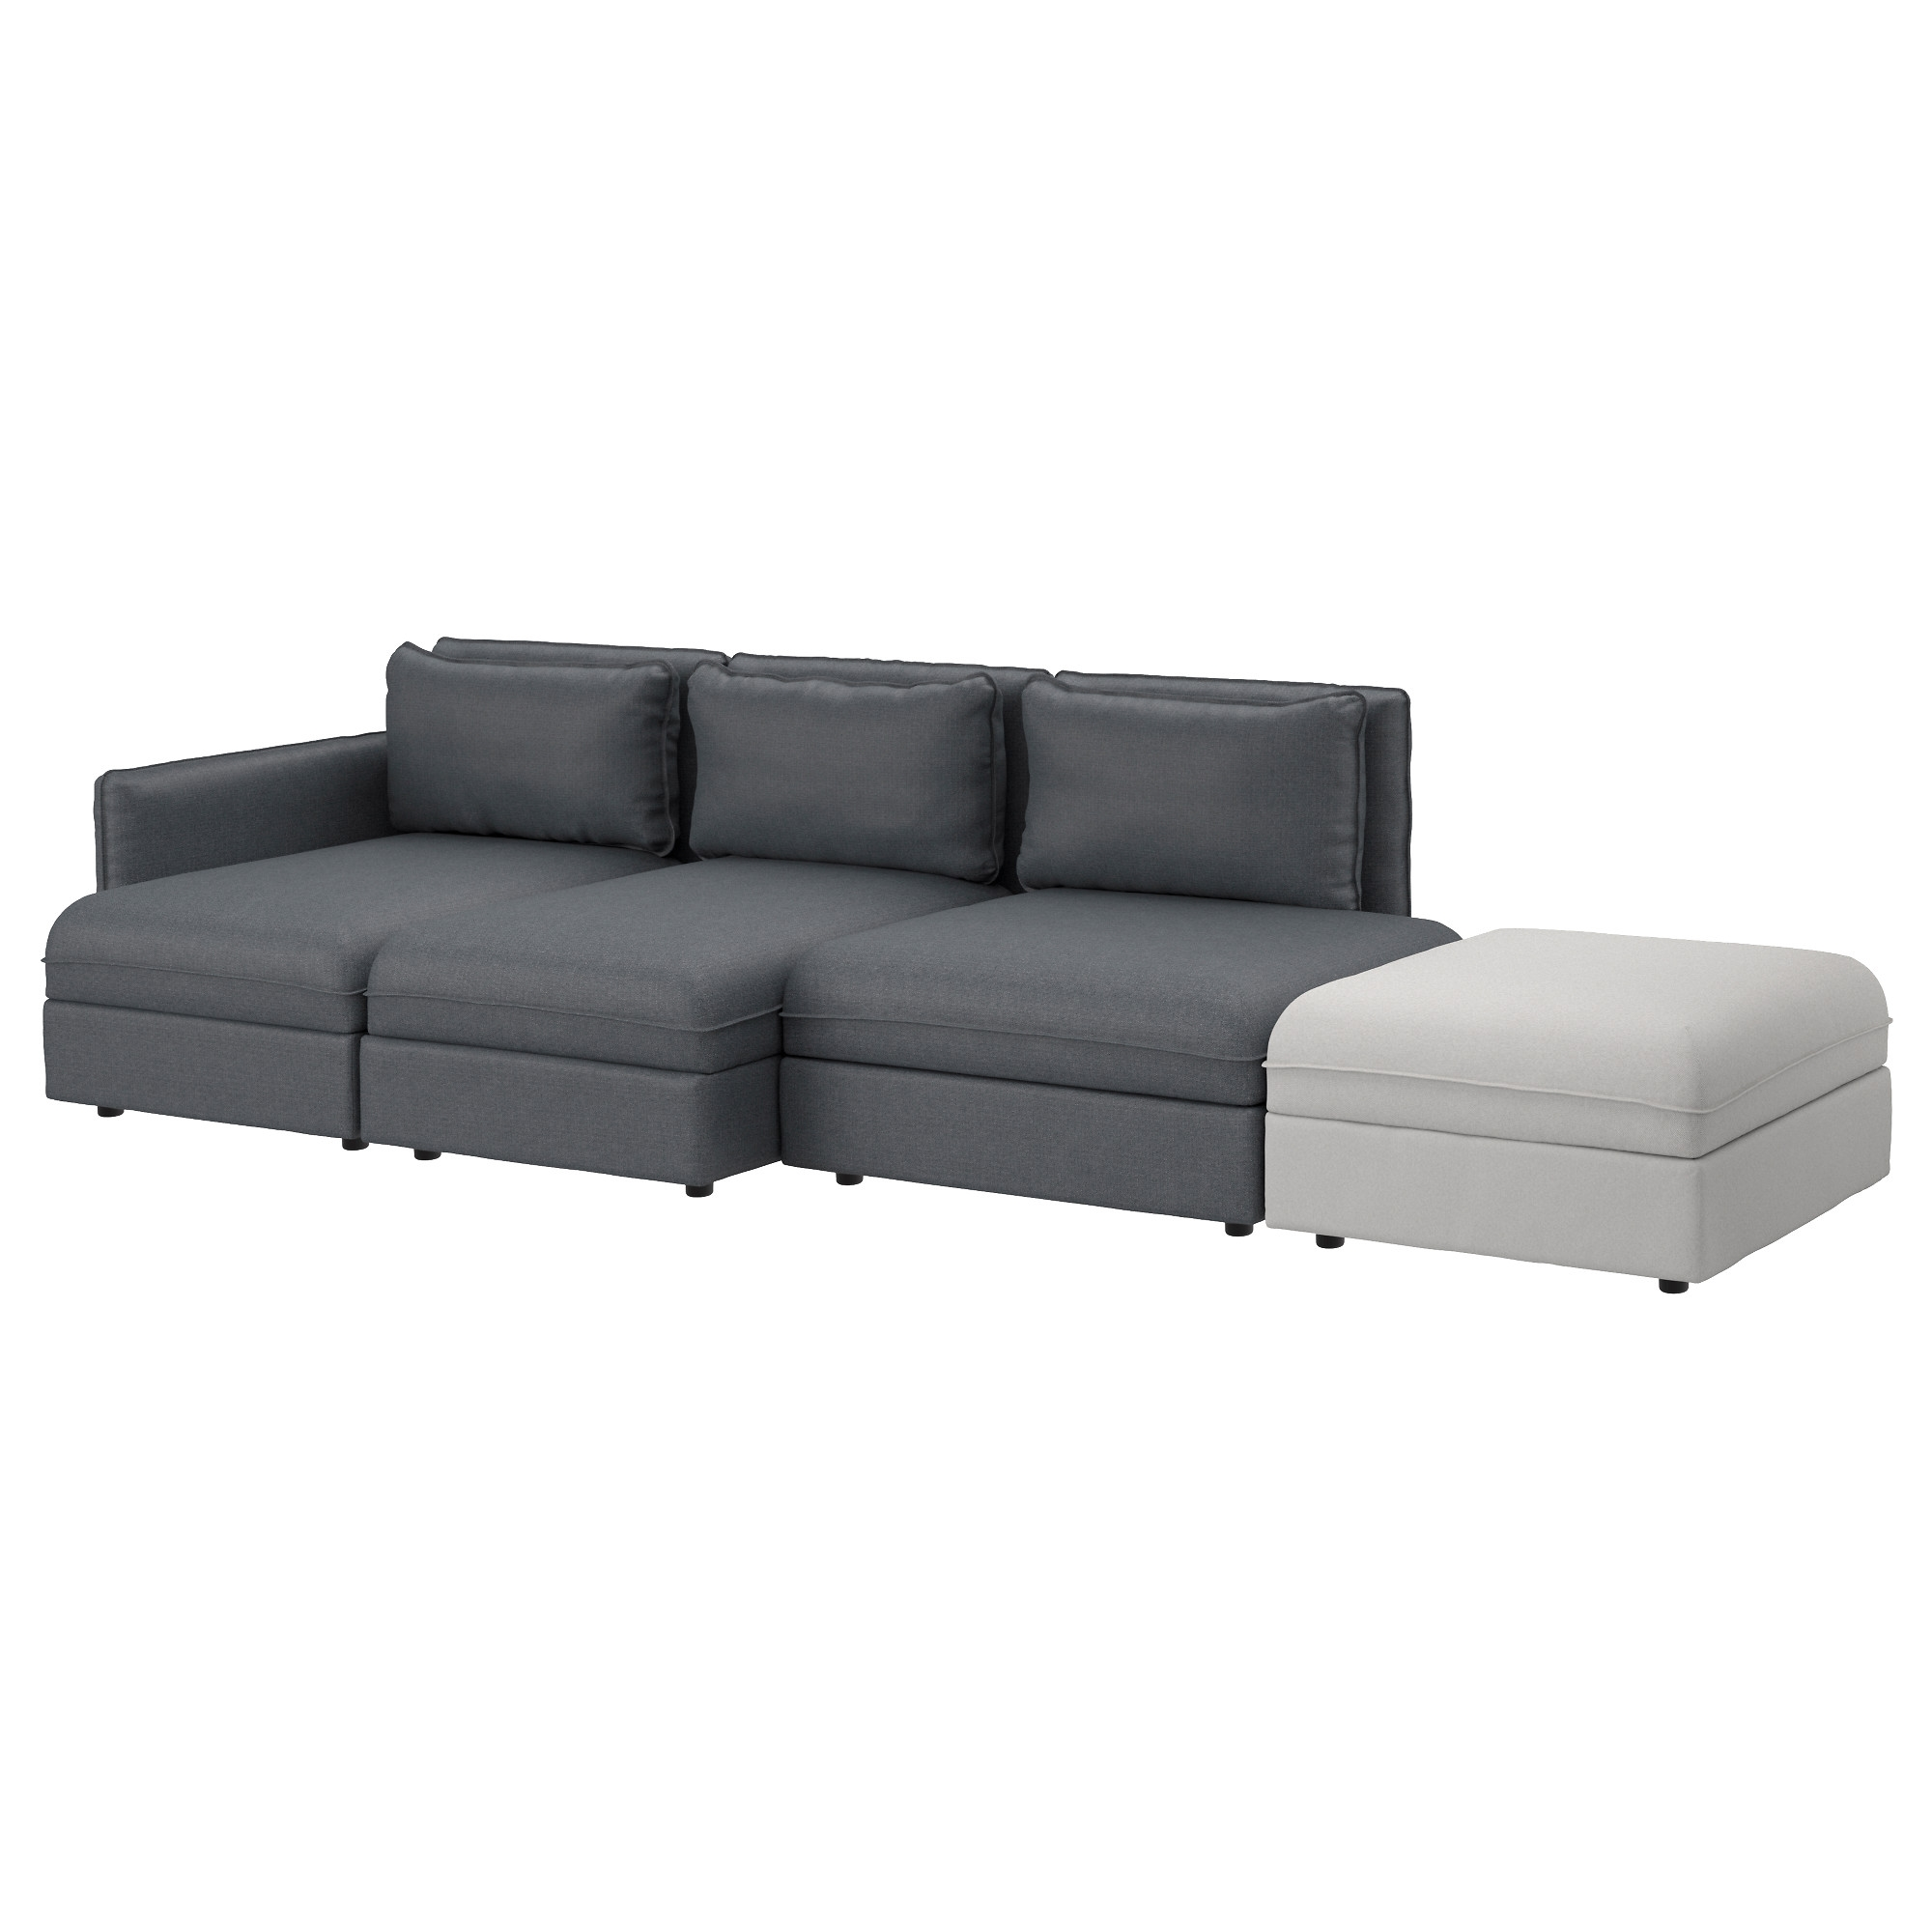 Fabric Sofas Modern Contemporary Ikea Within 4 Seater Couch (Image 6 of 15)